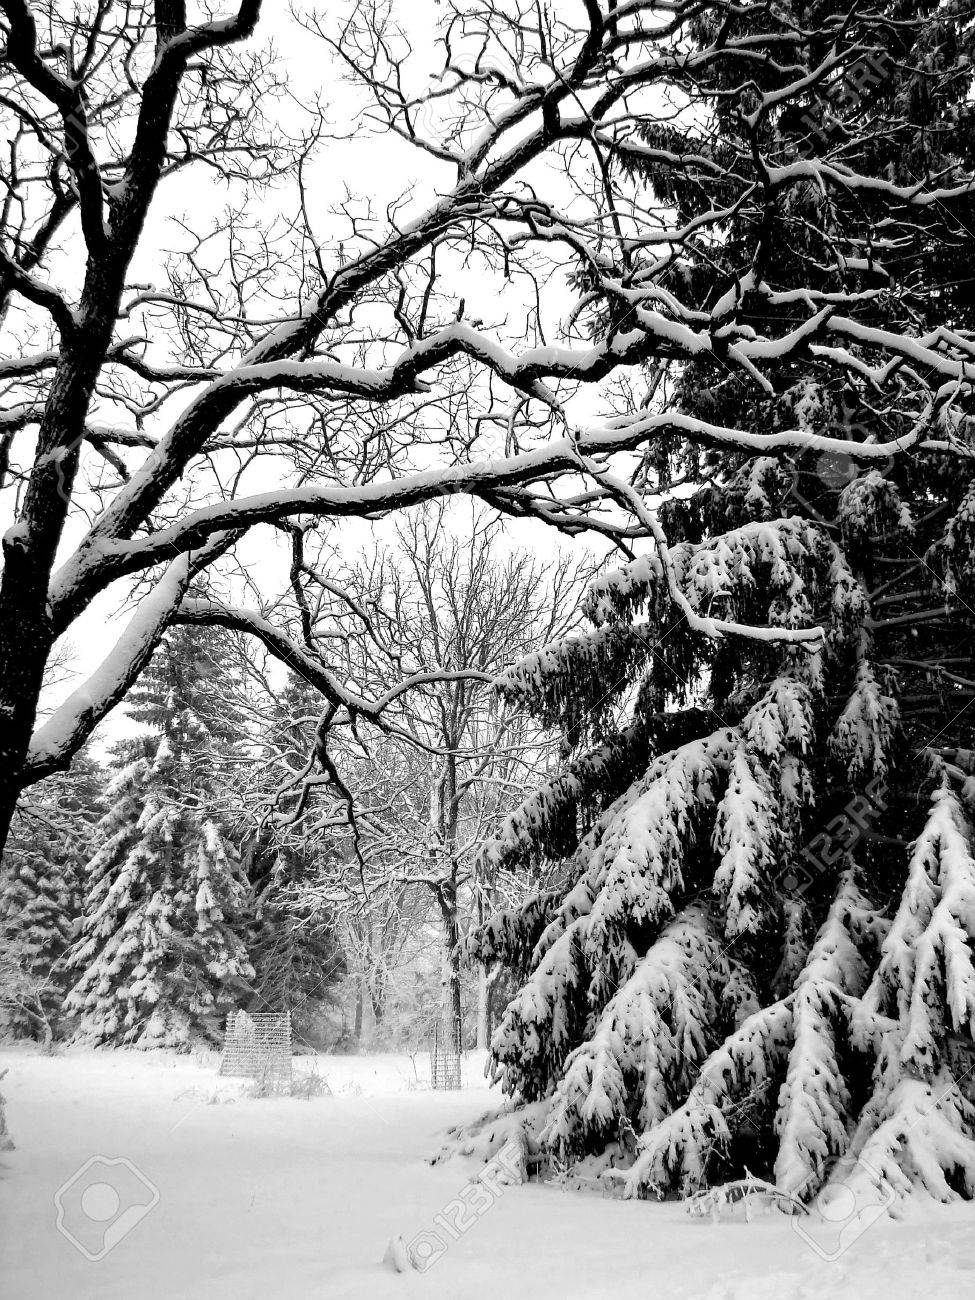 Royalty free photo of snowy evergreen trees